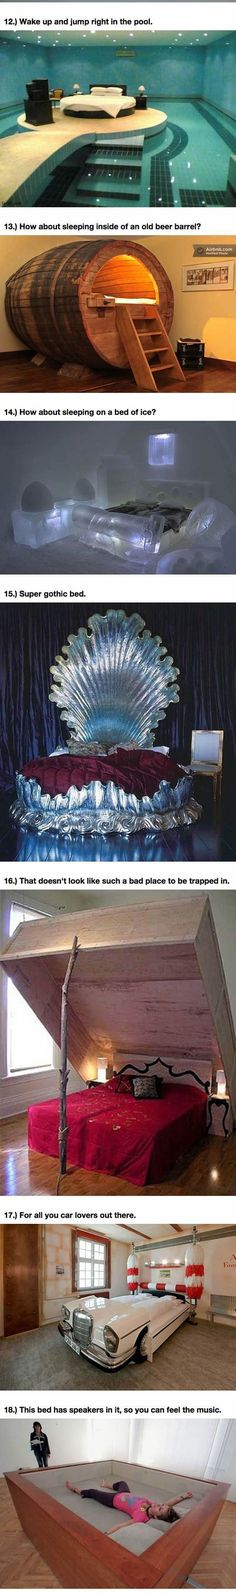 Funny pictures about 25 Amazing Beds Will Make You Wish It Was Nap Time. Oh, and cool pics about 25 Amazing Beds Will Make You Wish It Was Nap Time. Also, 25 Amazing Beds Will Make You Wish It Was Nap Time photos. Dream Rooms, Dream Bedroom, Pool Bedroom, Bedroom Bed, Bed Rooms, Awesome Bedrooms, Cool Rooms, My New Room, My Room